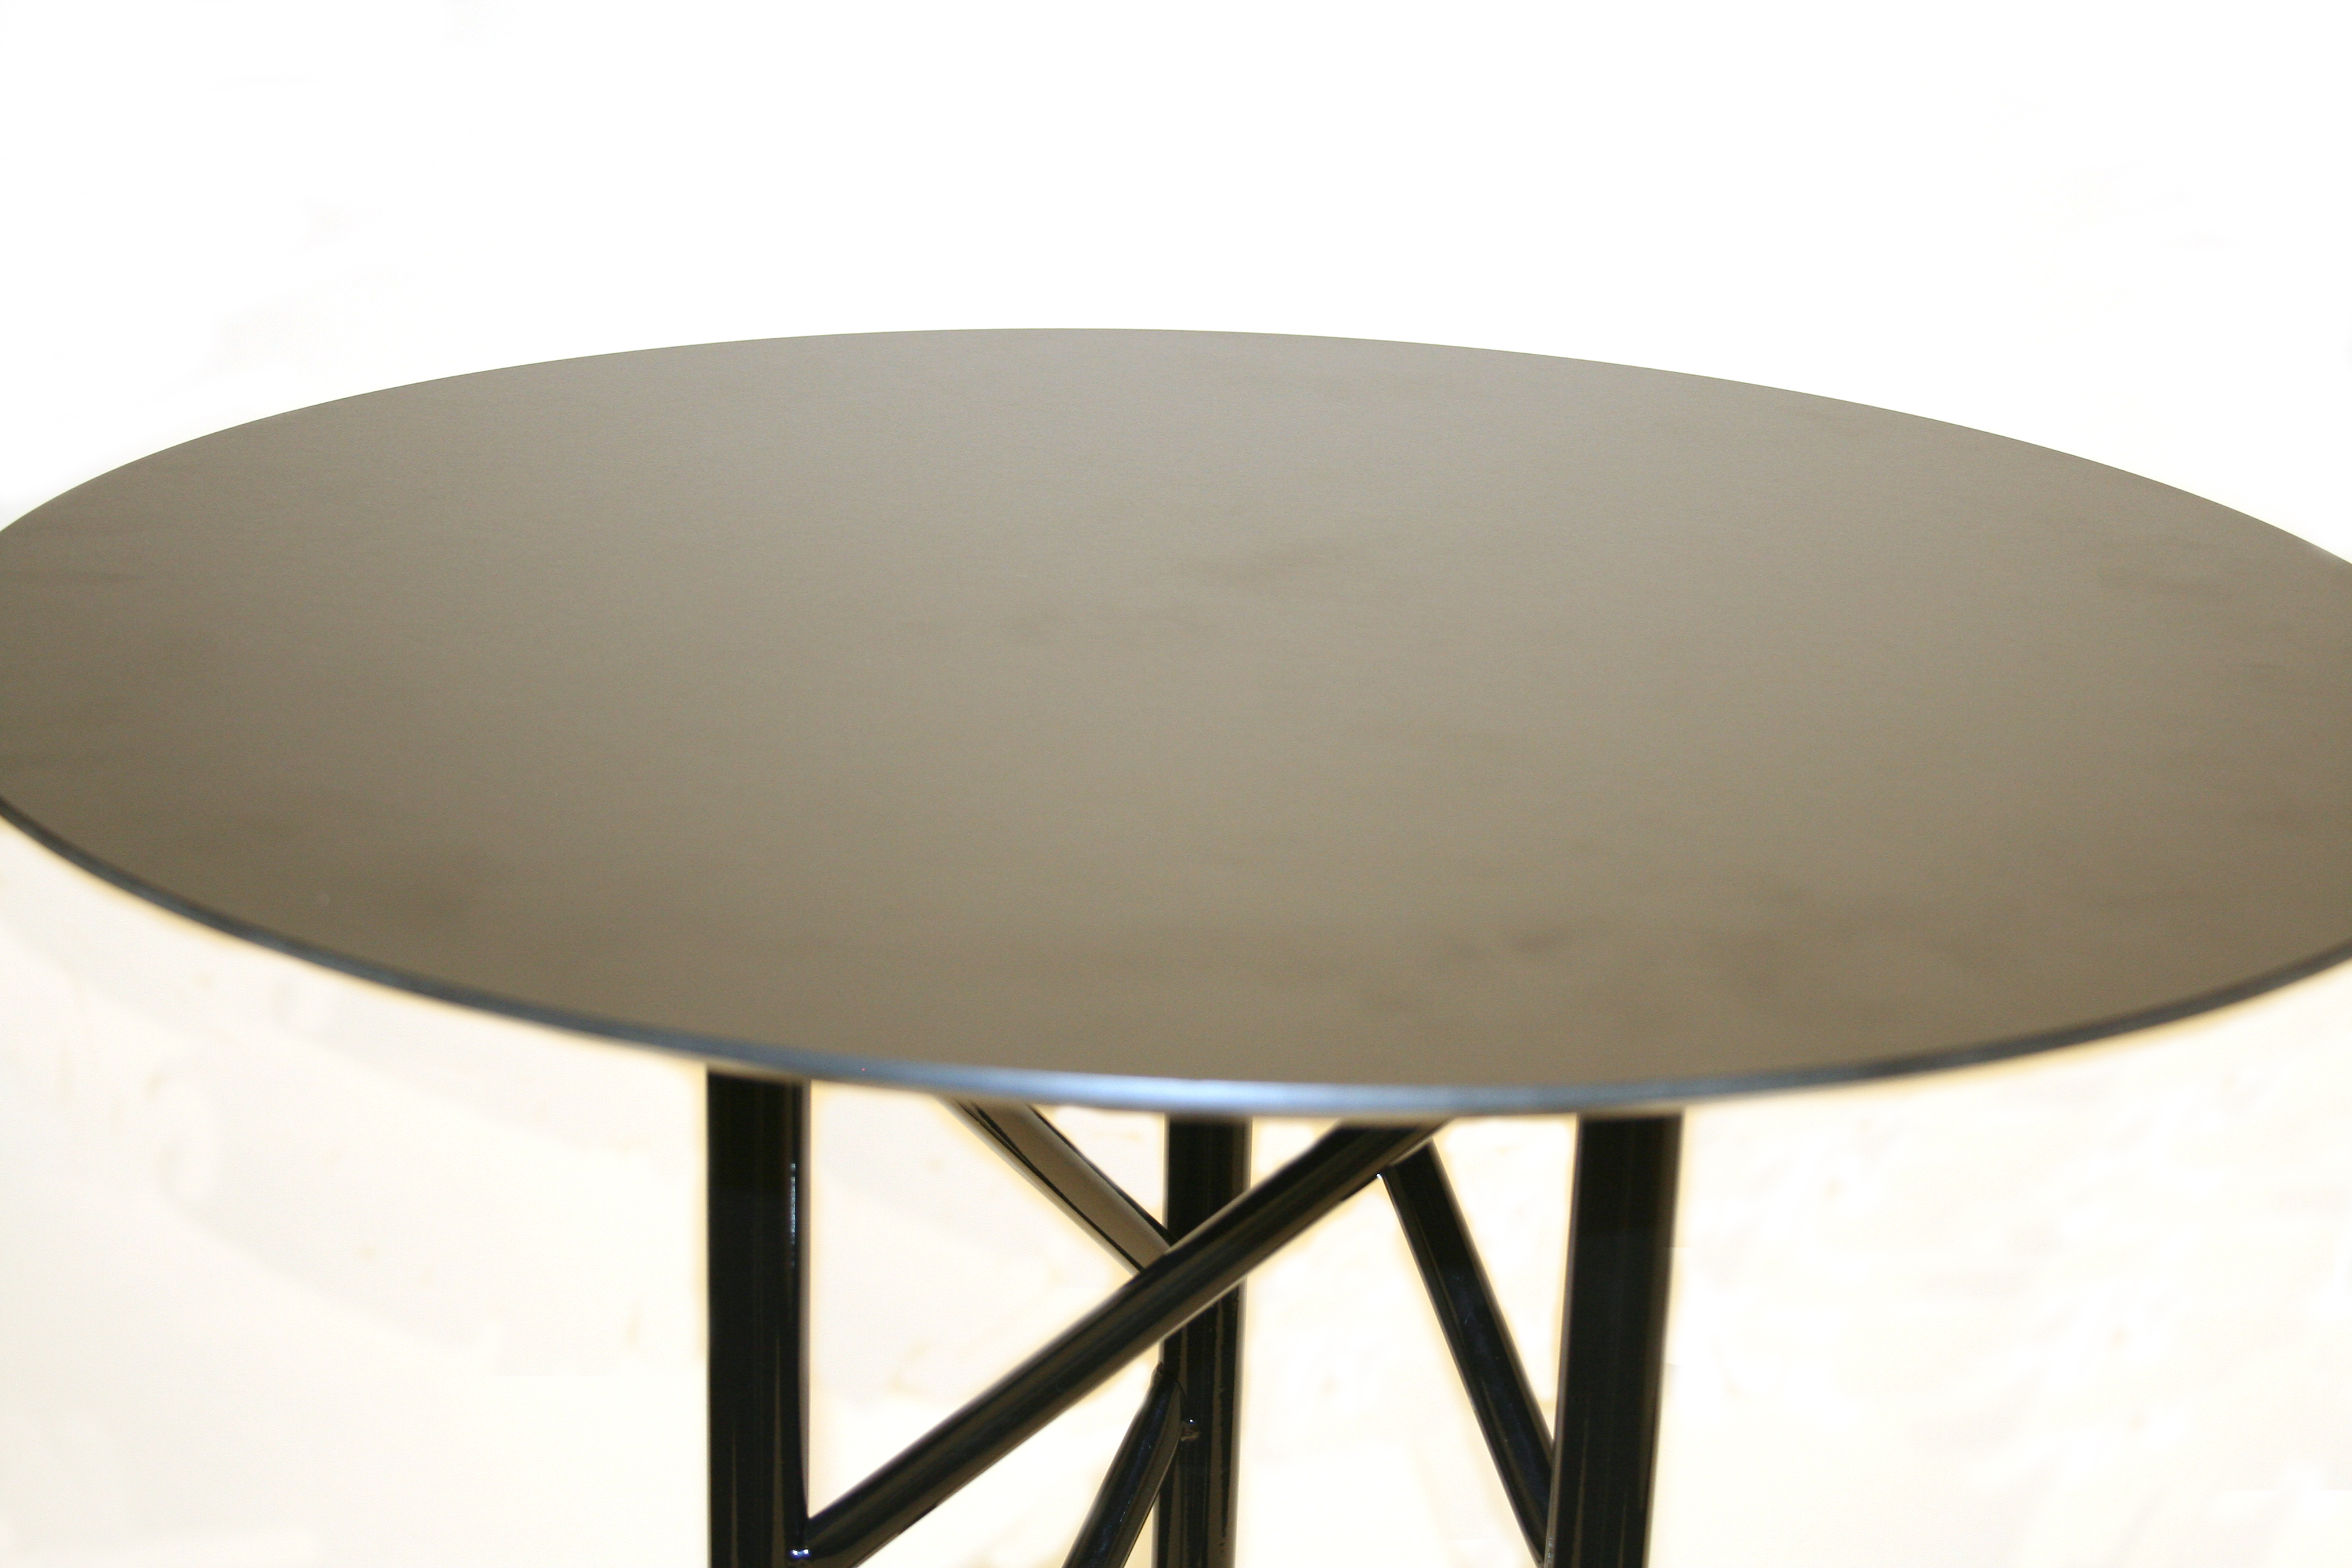 Blenheim High Table Close up Image - BE Furniture Sales